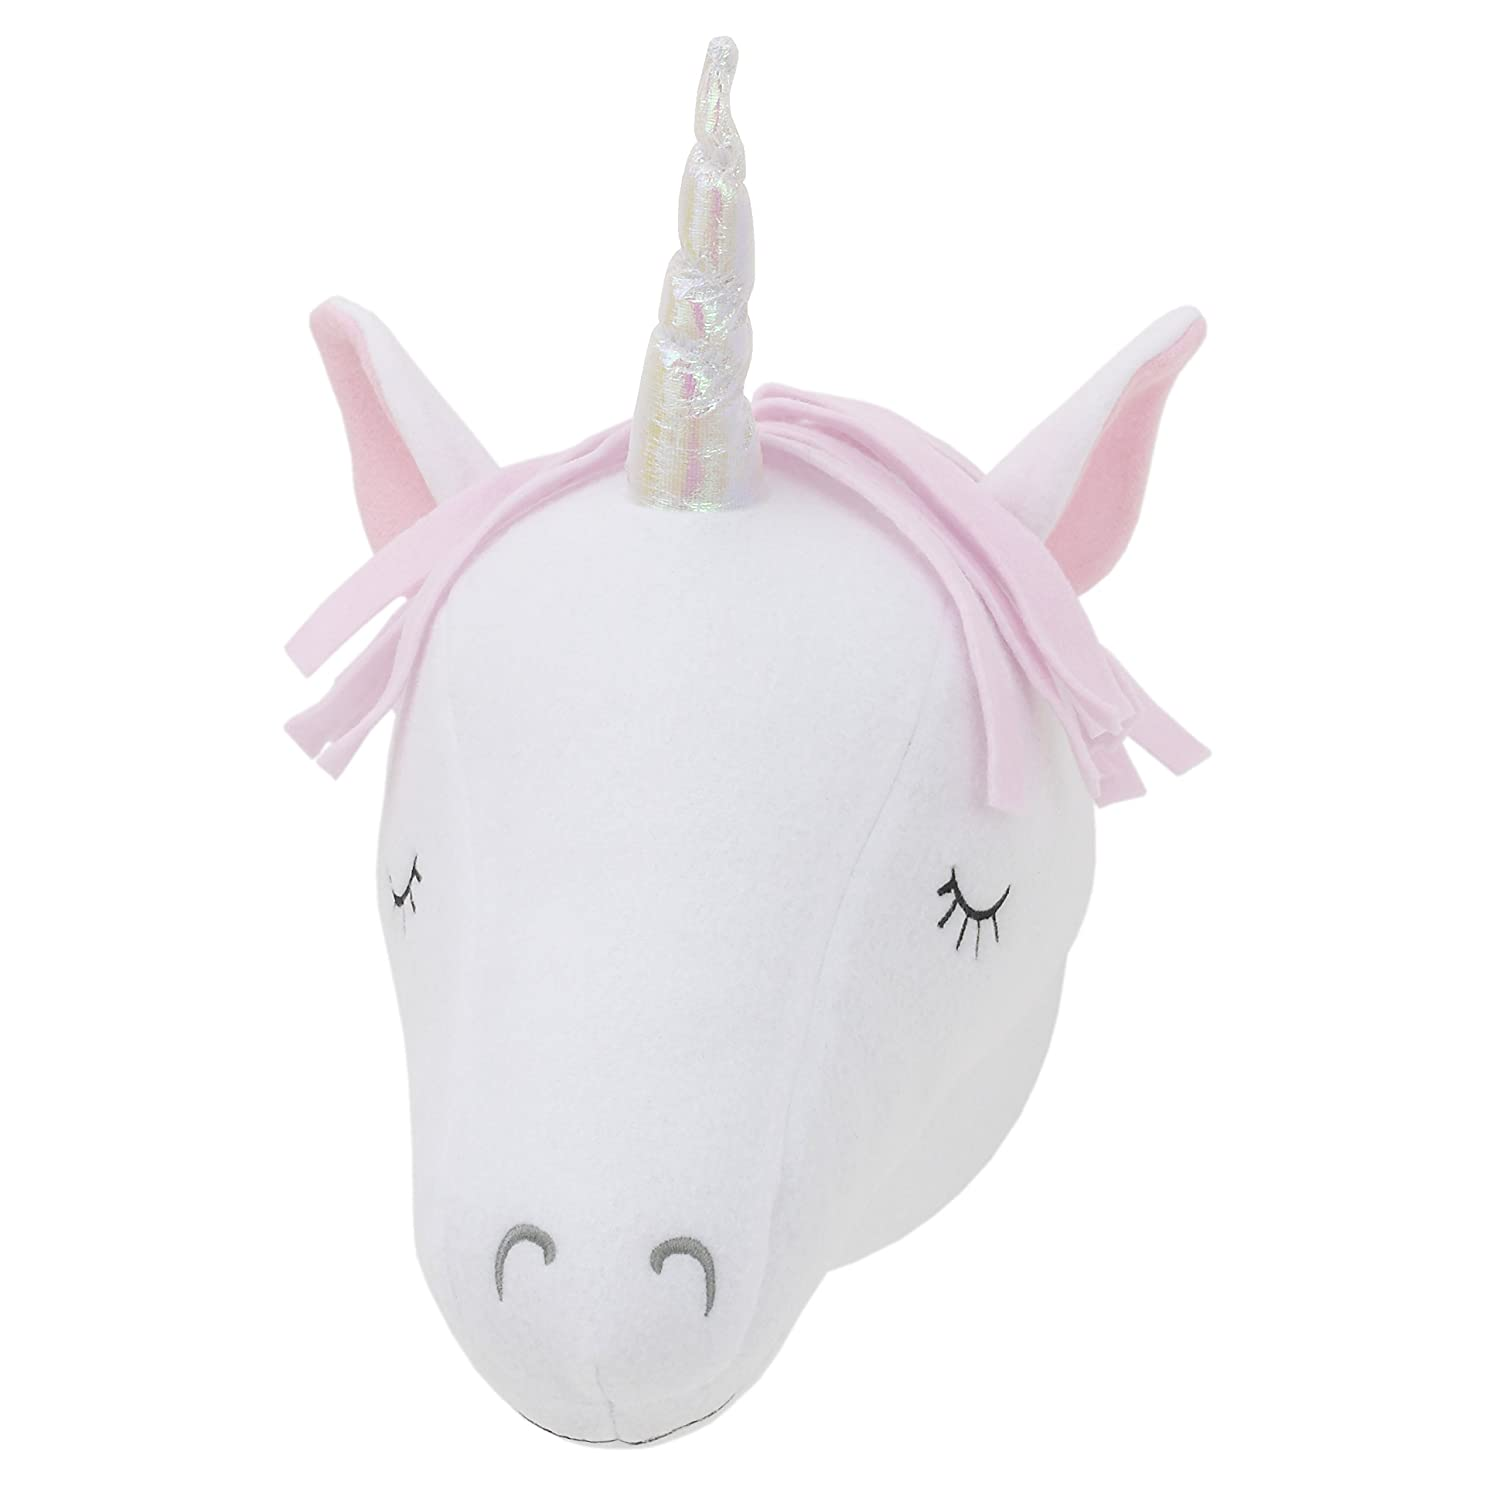 Little Love by NoJo – 3-D White/Pink Unicorn Stuffed Wall Hanging Decor, Fauxidermy - Nursery, Bedroom or Playroom Décor